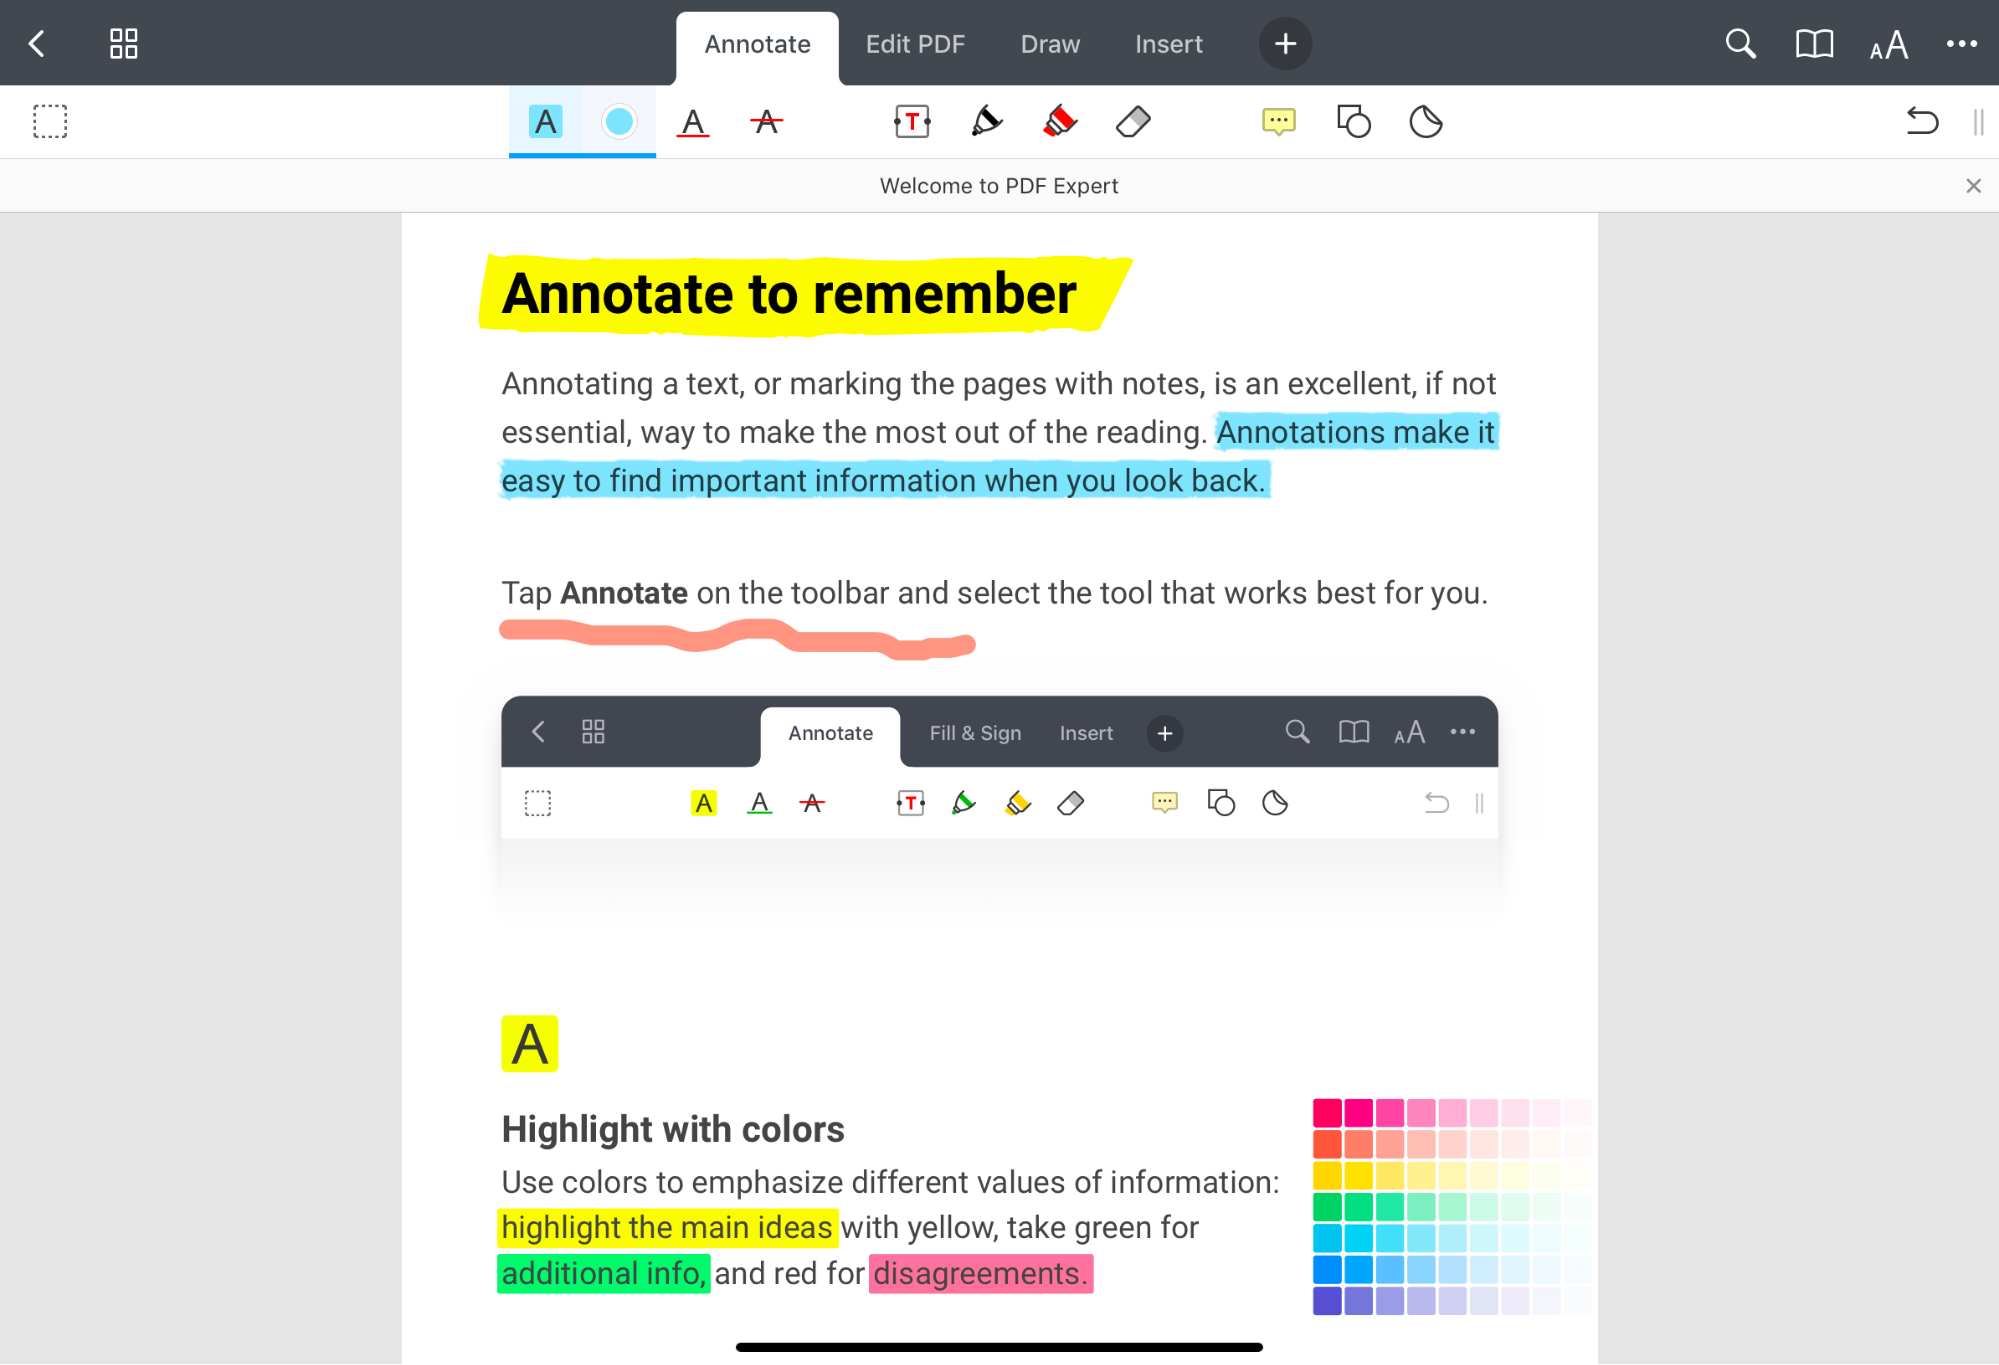 How to annotate PDF on iPad | Best PDF annotator for iPad